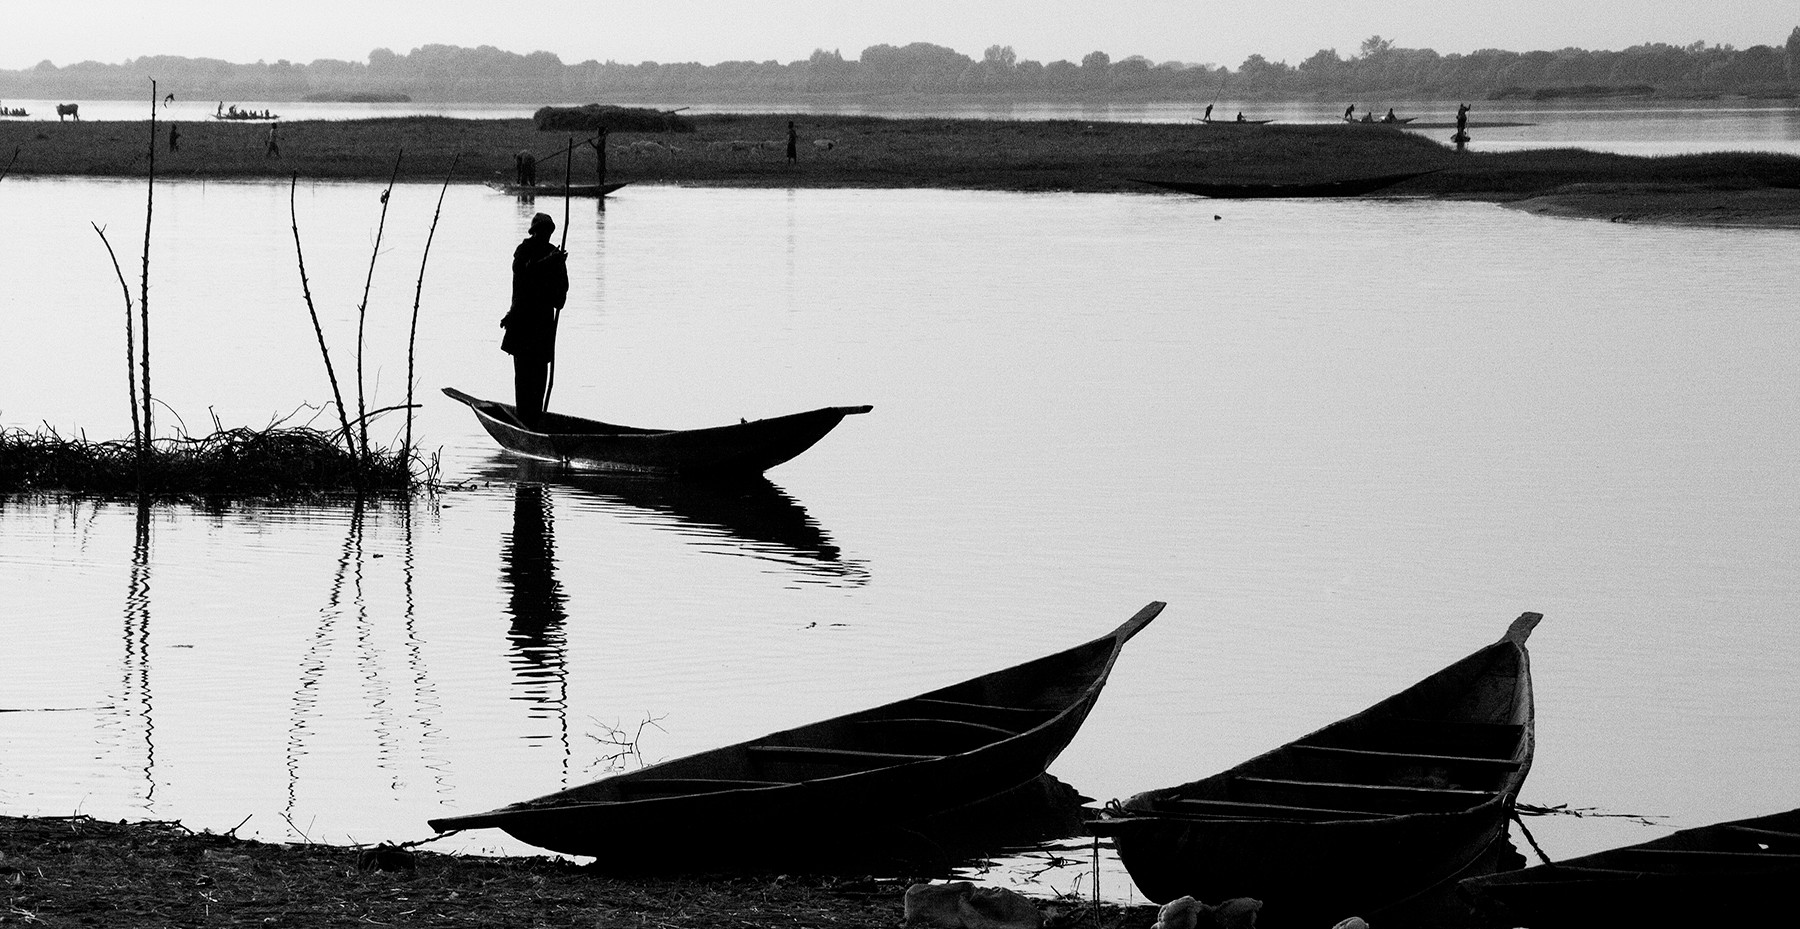 A boatman waits patiently for customers needing to cross. Gliding over its surface in a hand hewn boat powered by a long pole in the strong, sure hands of a man who knows every facet of this river, we felt the immensity of history that has touched these shores and the calm that comes from a life bound by tradition economics and the phyiscal challenges of survival.